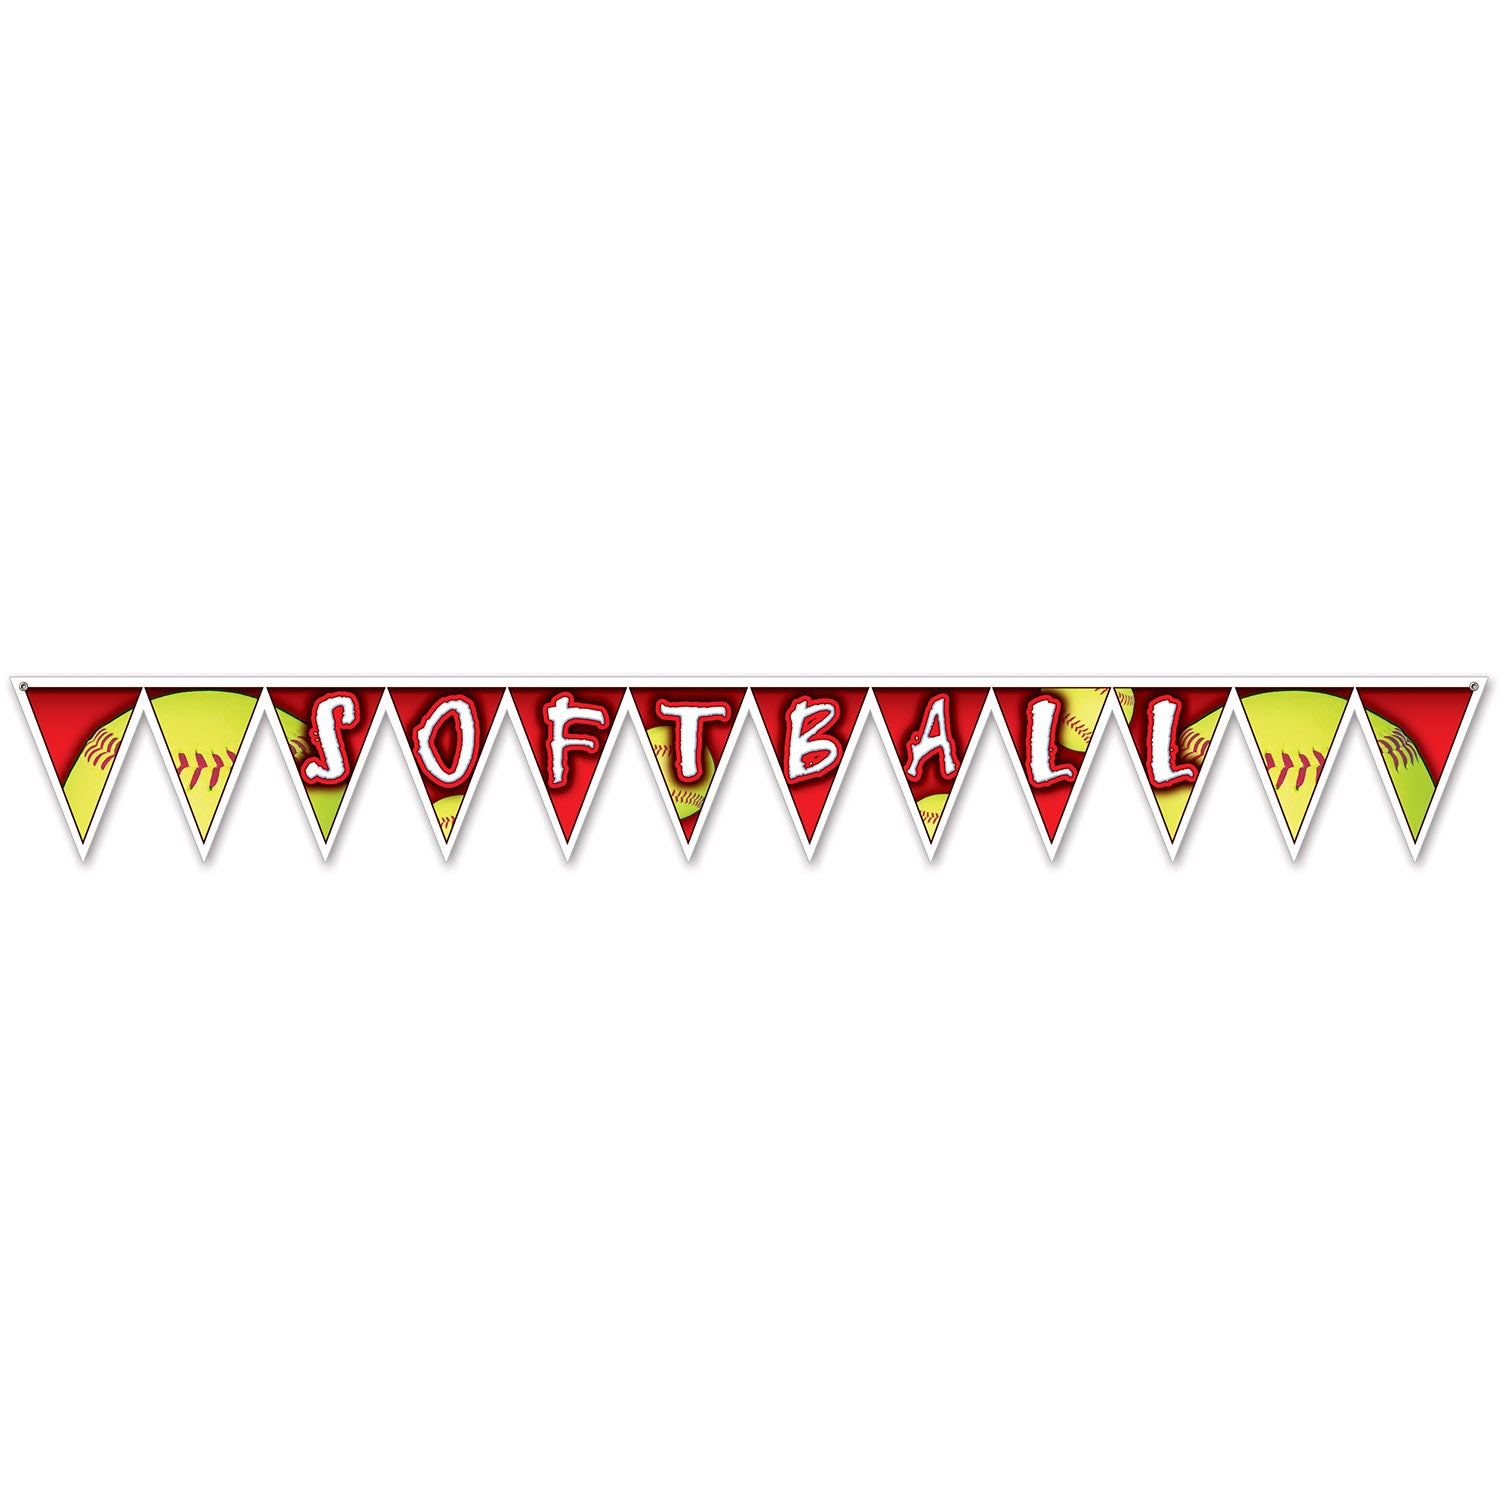 Softball Pennant Banner by Beistle - Softball Theme Decorations